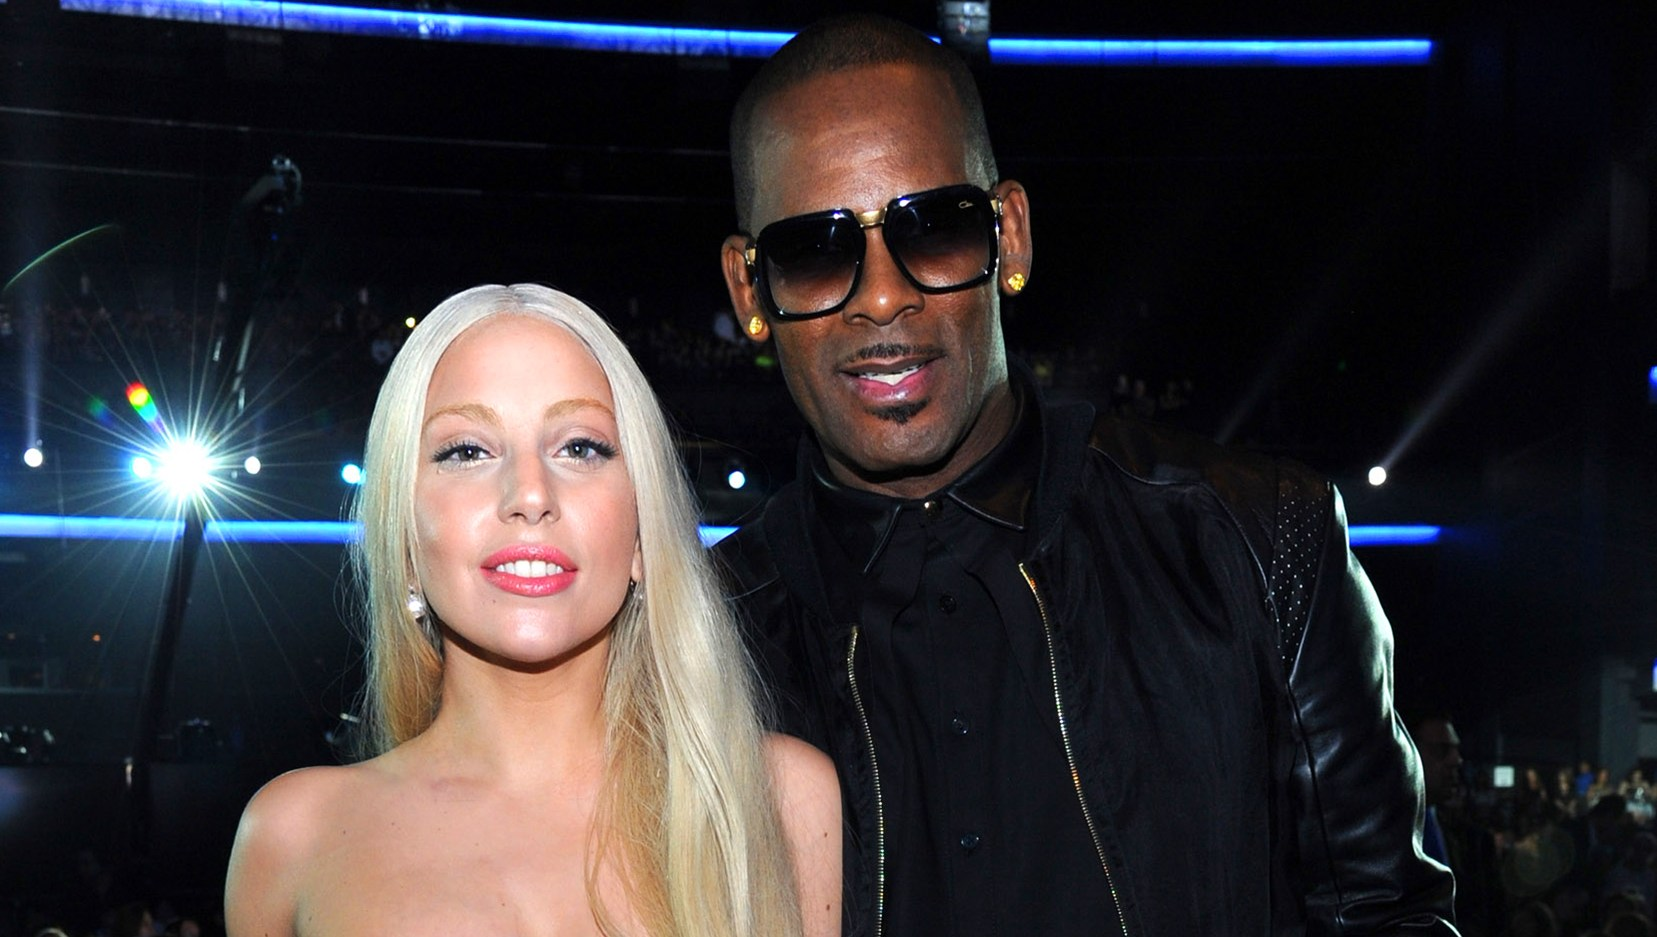 ady Gaga, Christina Aguilera, John Legend and More Stars Who Have Spoken Out Against R. Kelly